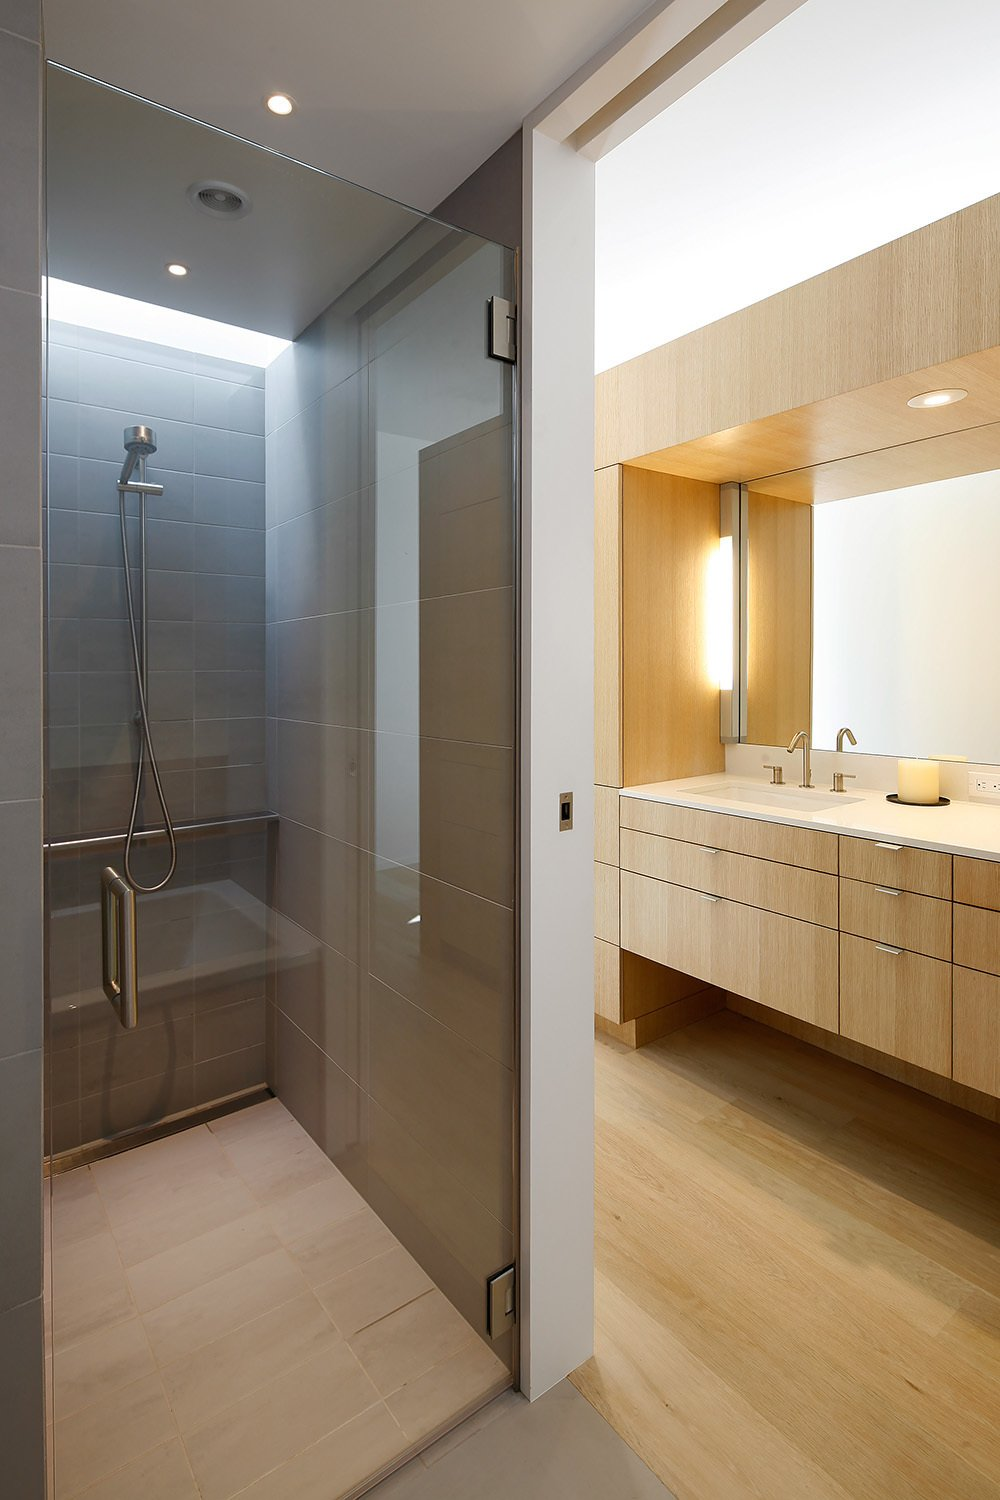 A Hansgrohe Raindance shower head is mounted behind the glass in the master bathroom. A Kohler Ladina undermount sink sits under the vanity mirror.  Portage Bay Bungalow by Kelly Dawson